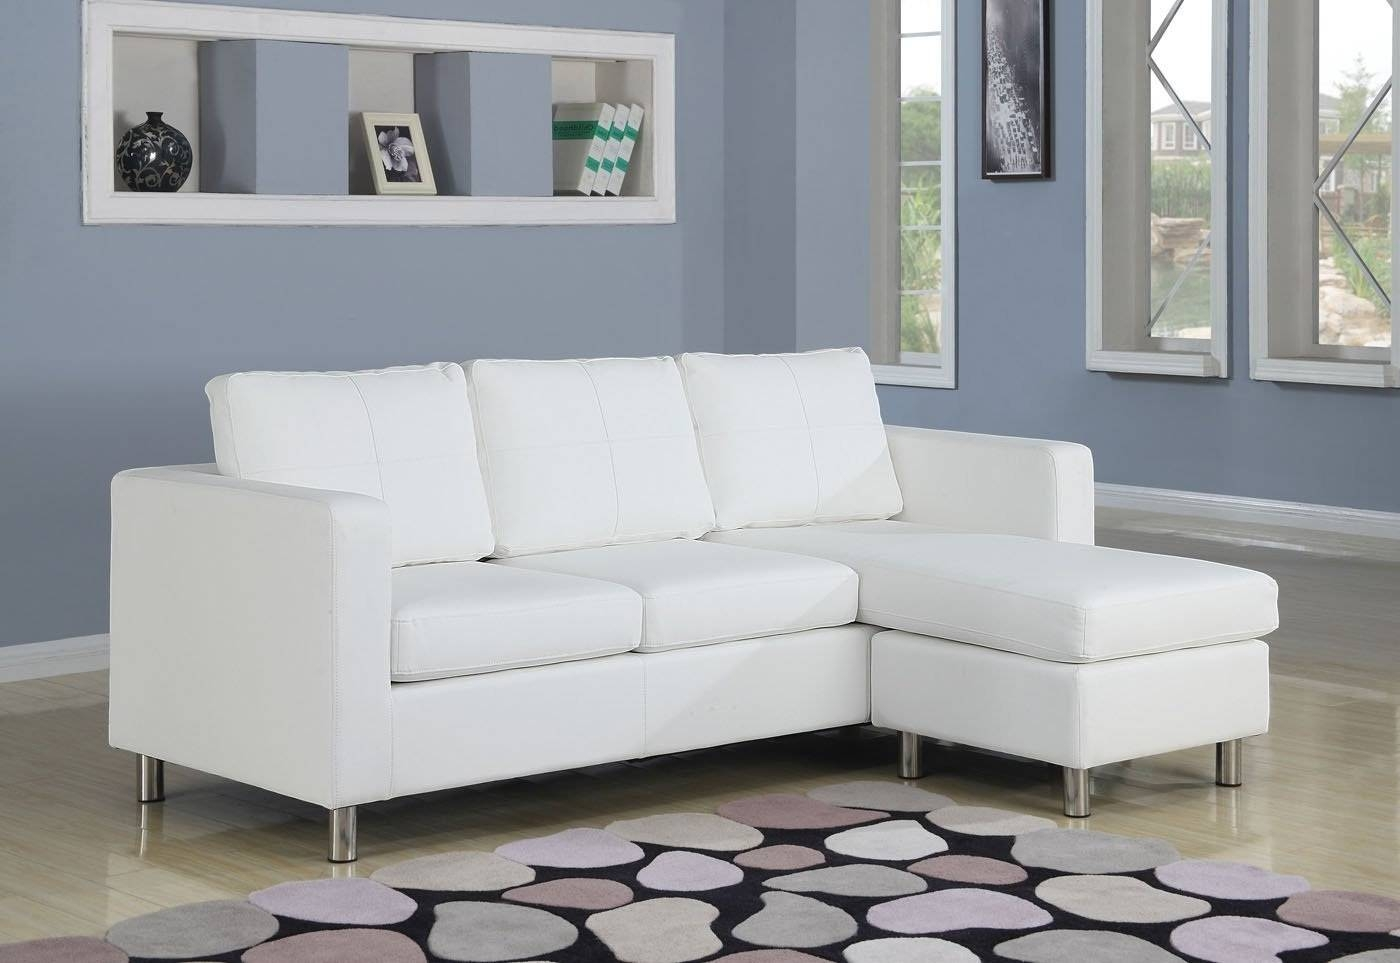 Best Small Sectional Sofa With Chaise 49 On Sofas And Couches Inside Small Scale Leather Sectional Sofas (View 6 of 15)